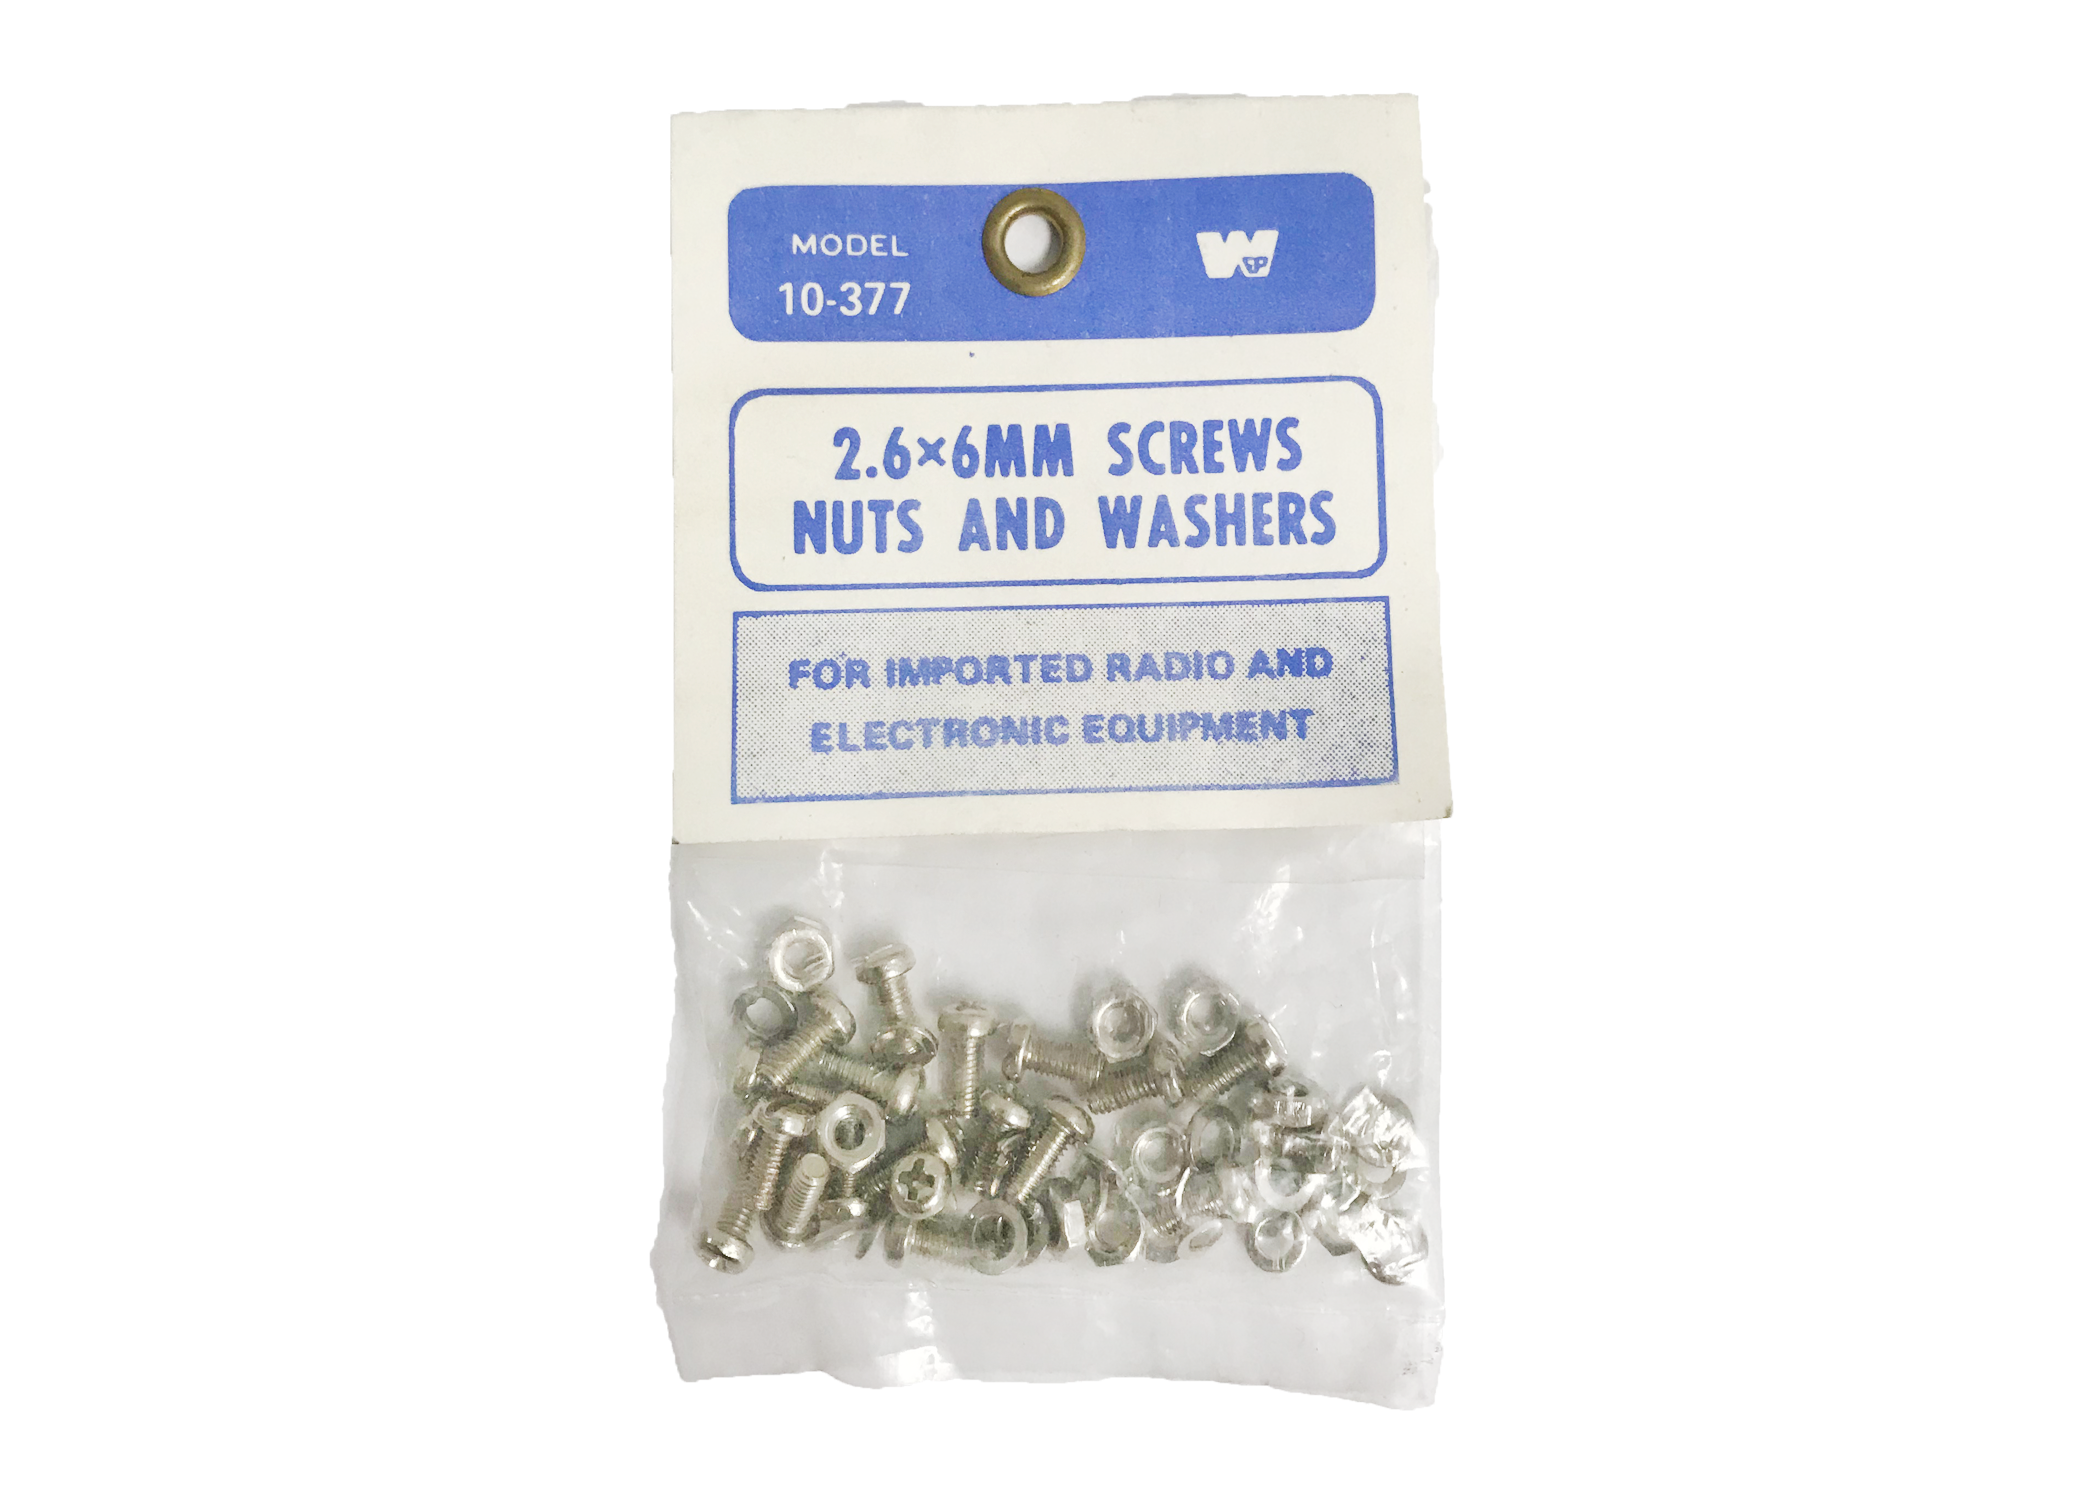 10377 - Twinpoint 2.6 x 6mm Screws & Nuts & Washers